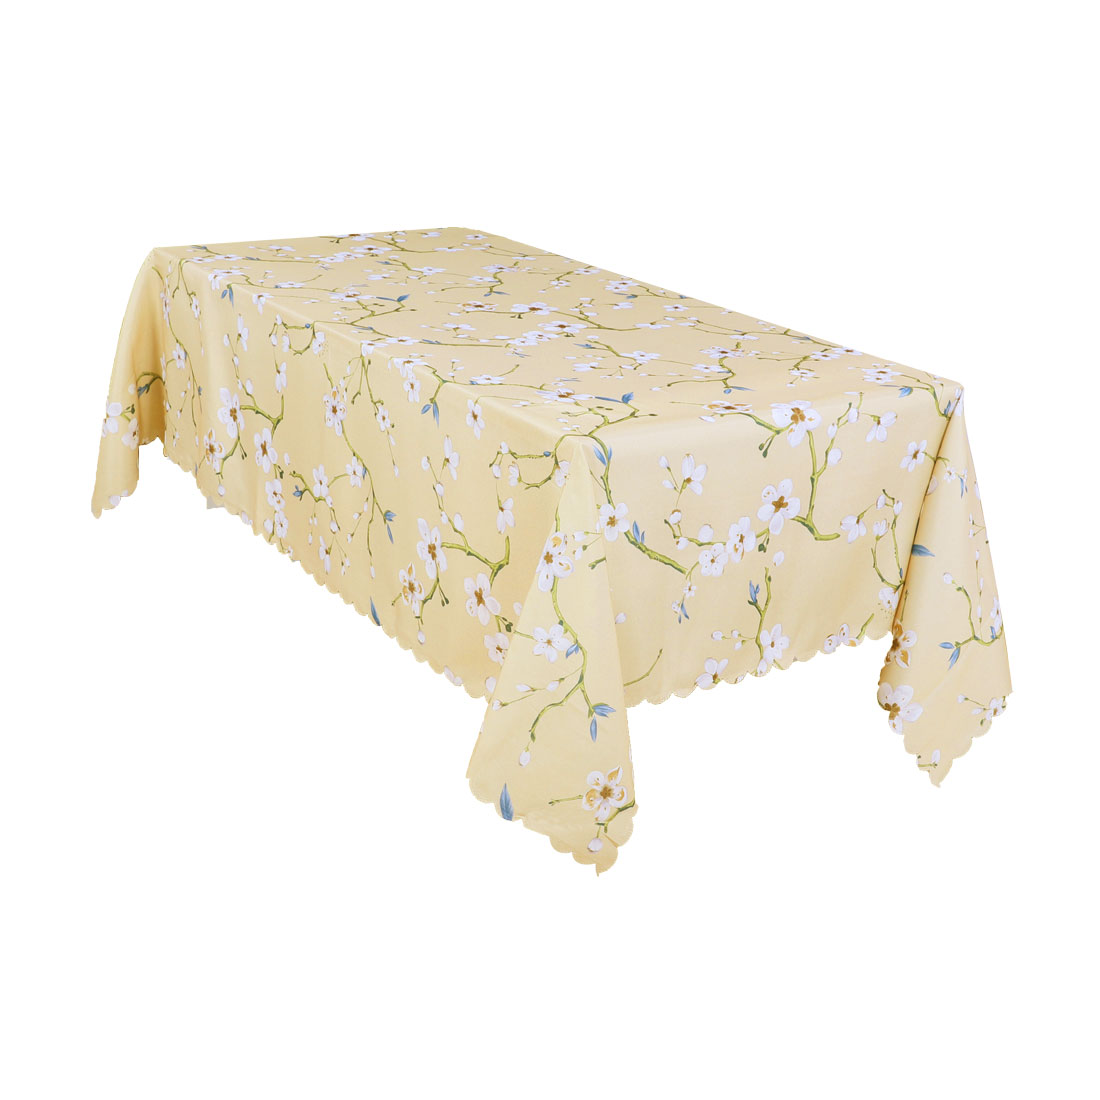 """Tablecloth Cotton-linen Printed Table Cloth for Kitchen Dinner 55"""" x 86"""", Khaki"""